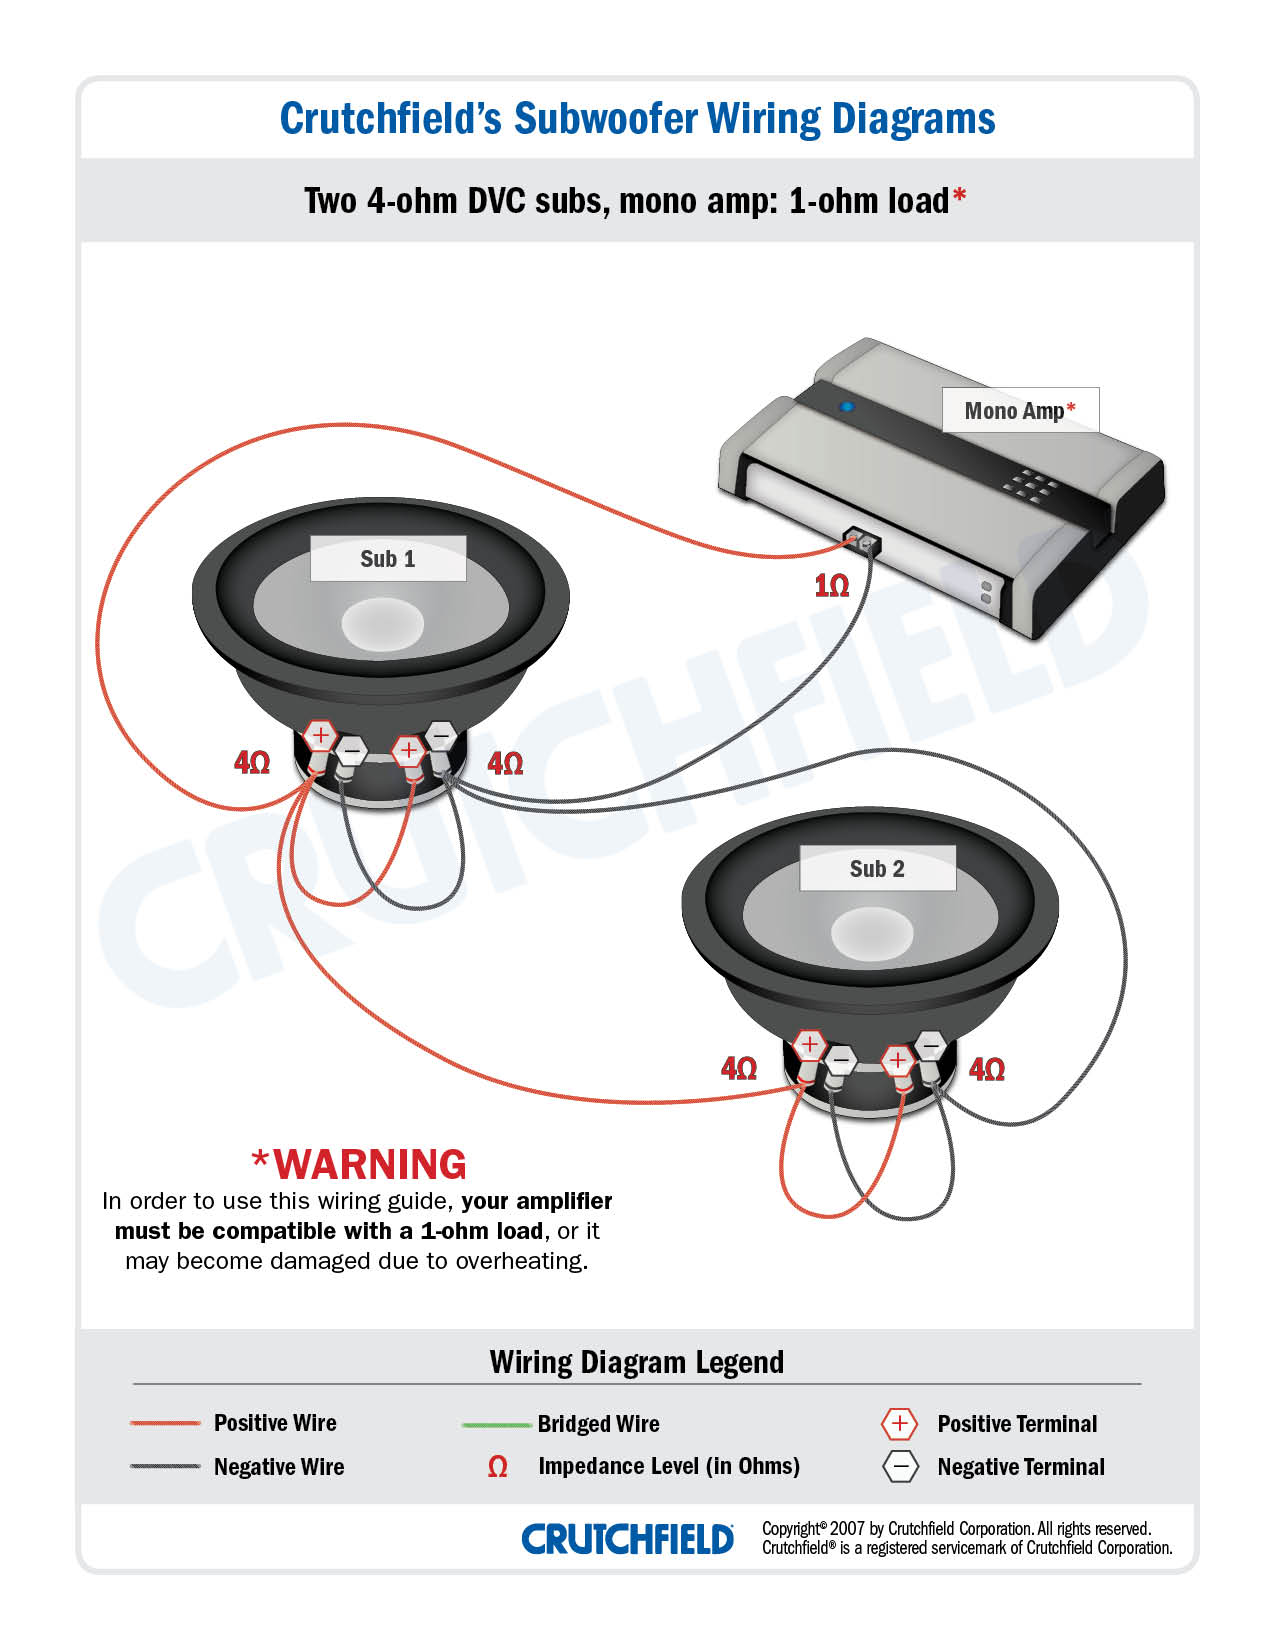 Wiring Diagram For A Car Stereo Amp And Subwoofer from pix.crutchfield.com